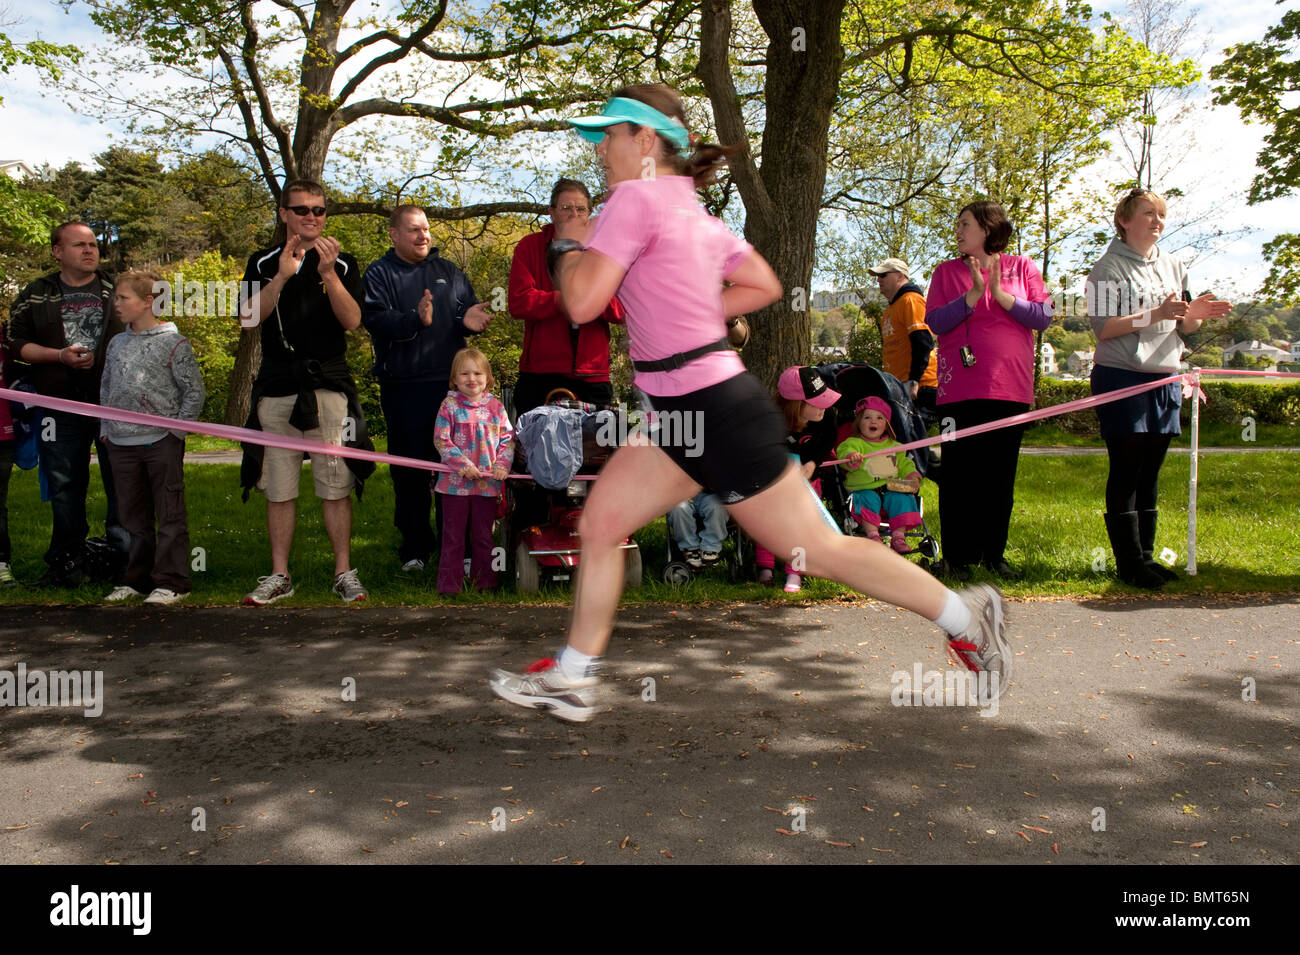 Women taking part in the annual cancer research charity fund raising RACE FOR LIFE ABERYSTWYTH MAY 16 2010 - Stock Image